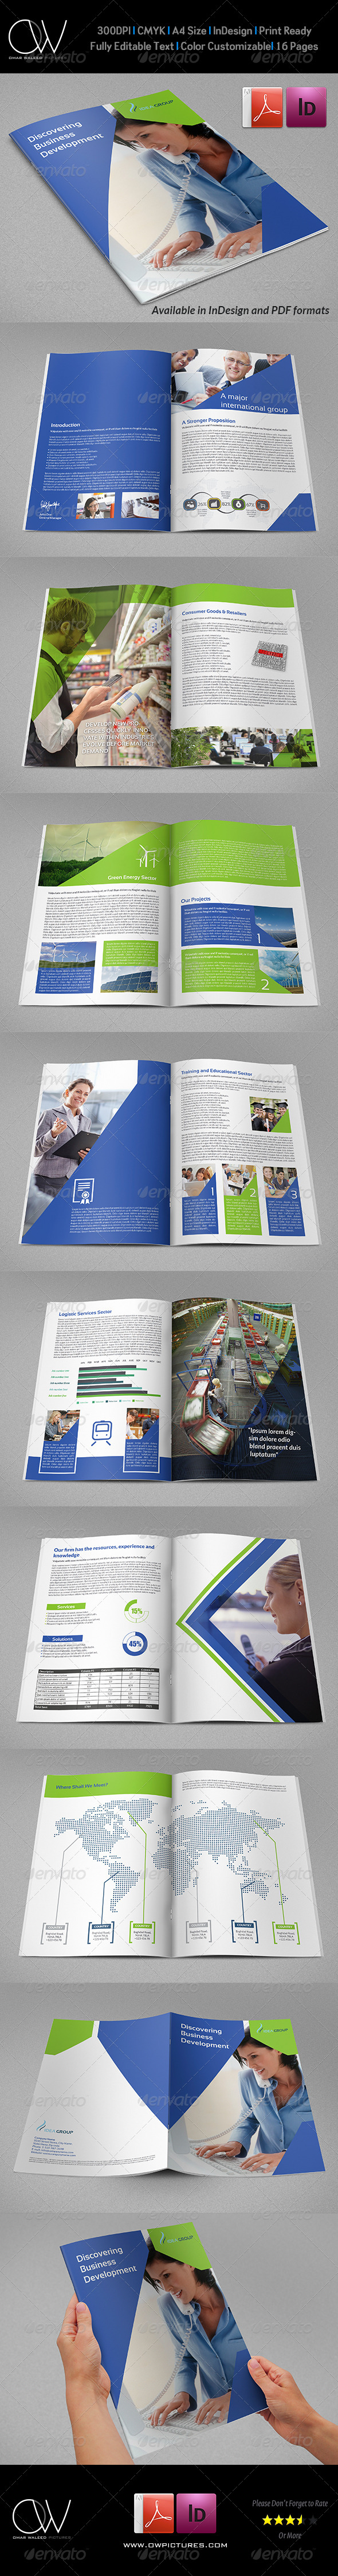 Company Brochure Template Vol.38 - 16 Pages - Corporate Brochures